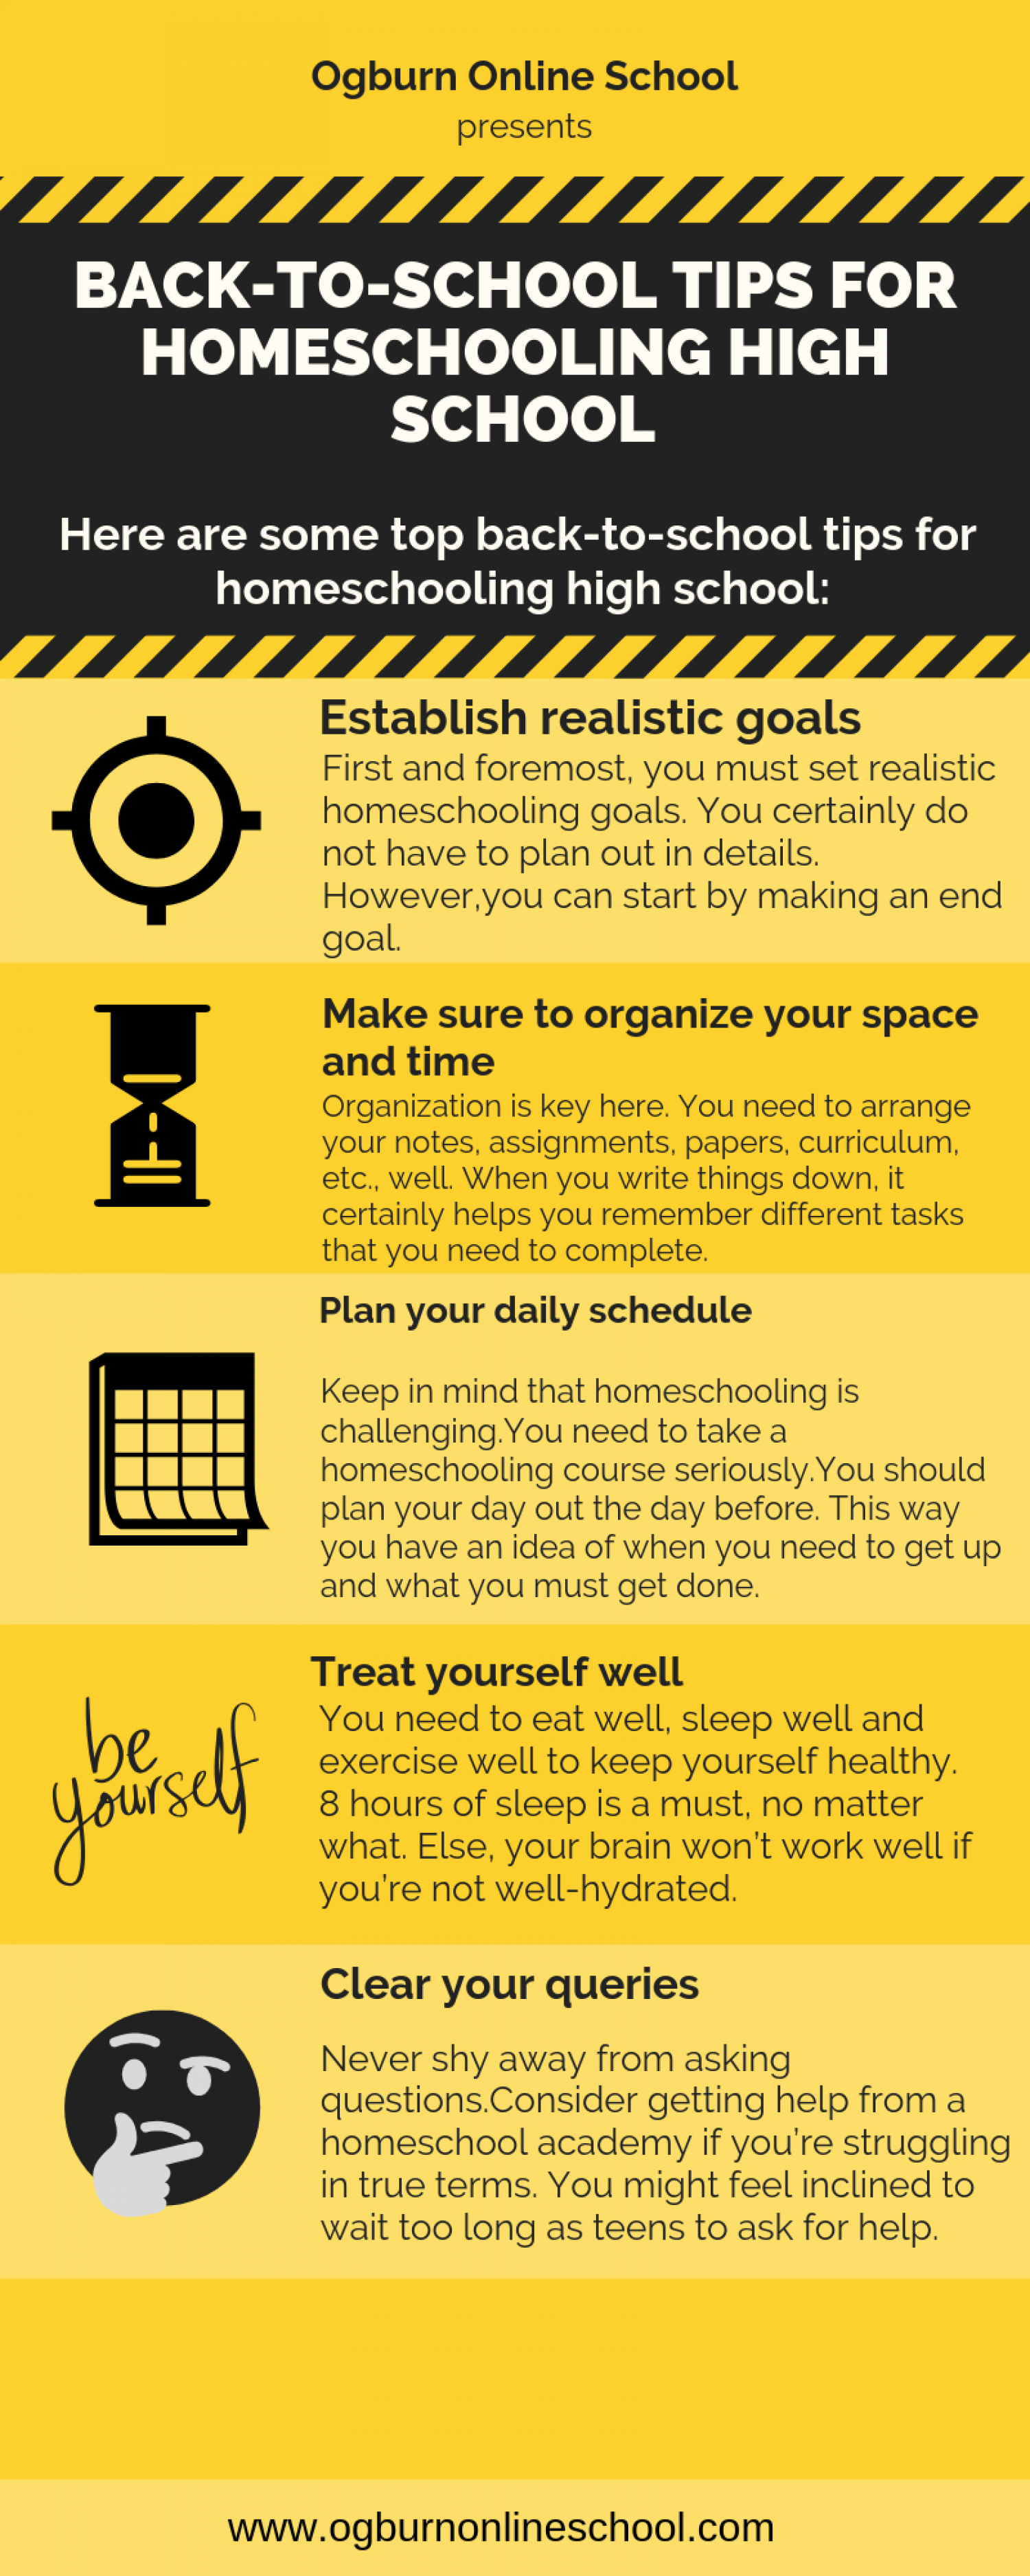 Back-to-school Tips for Homeschooling High School Infographic